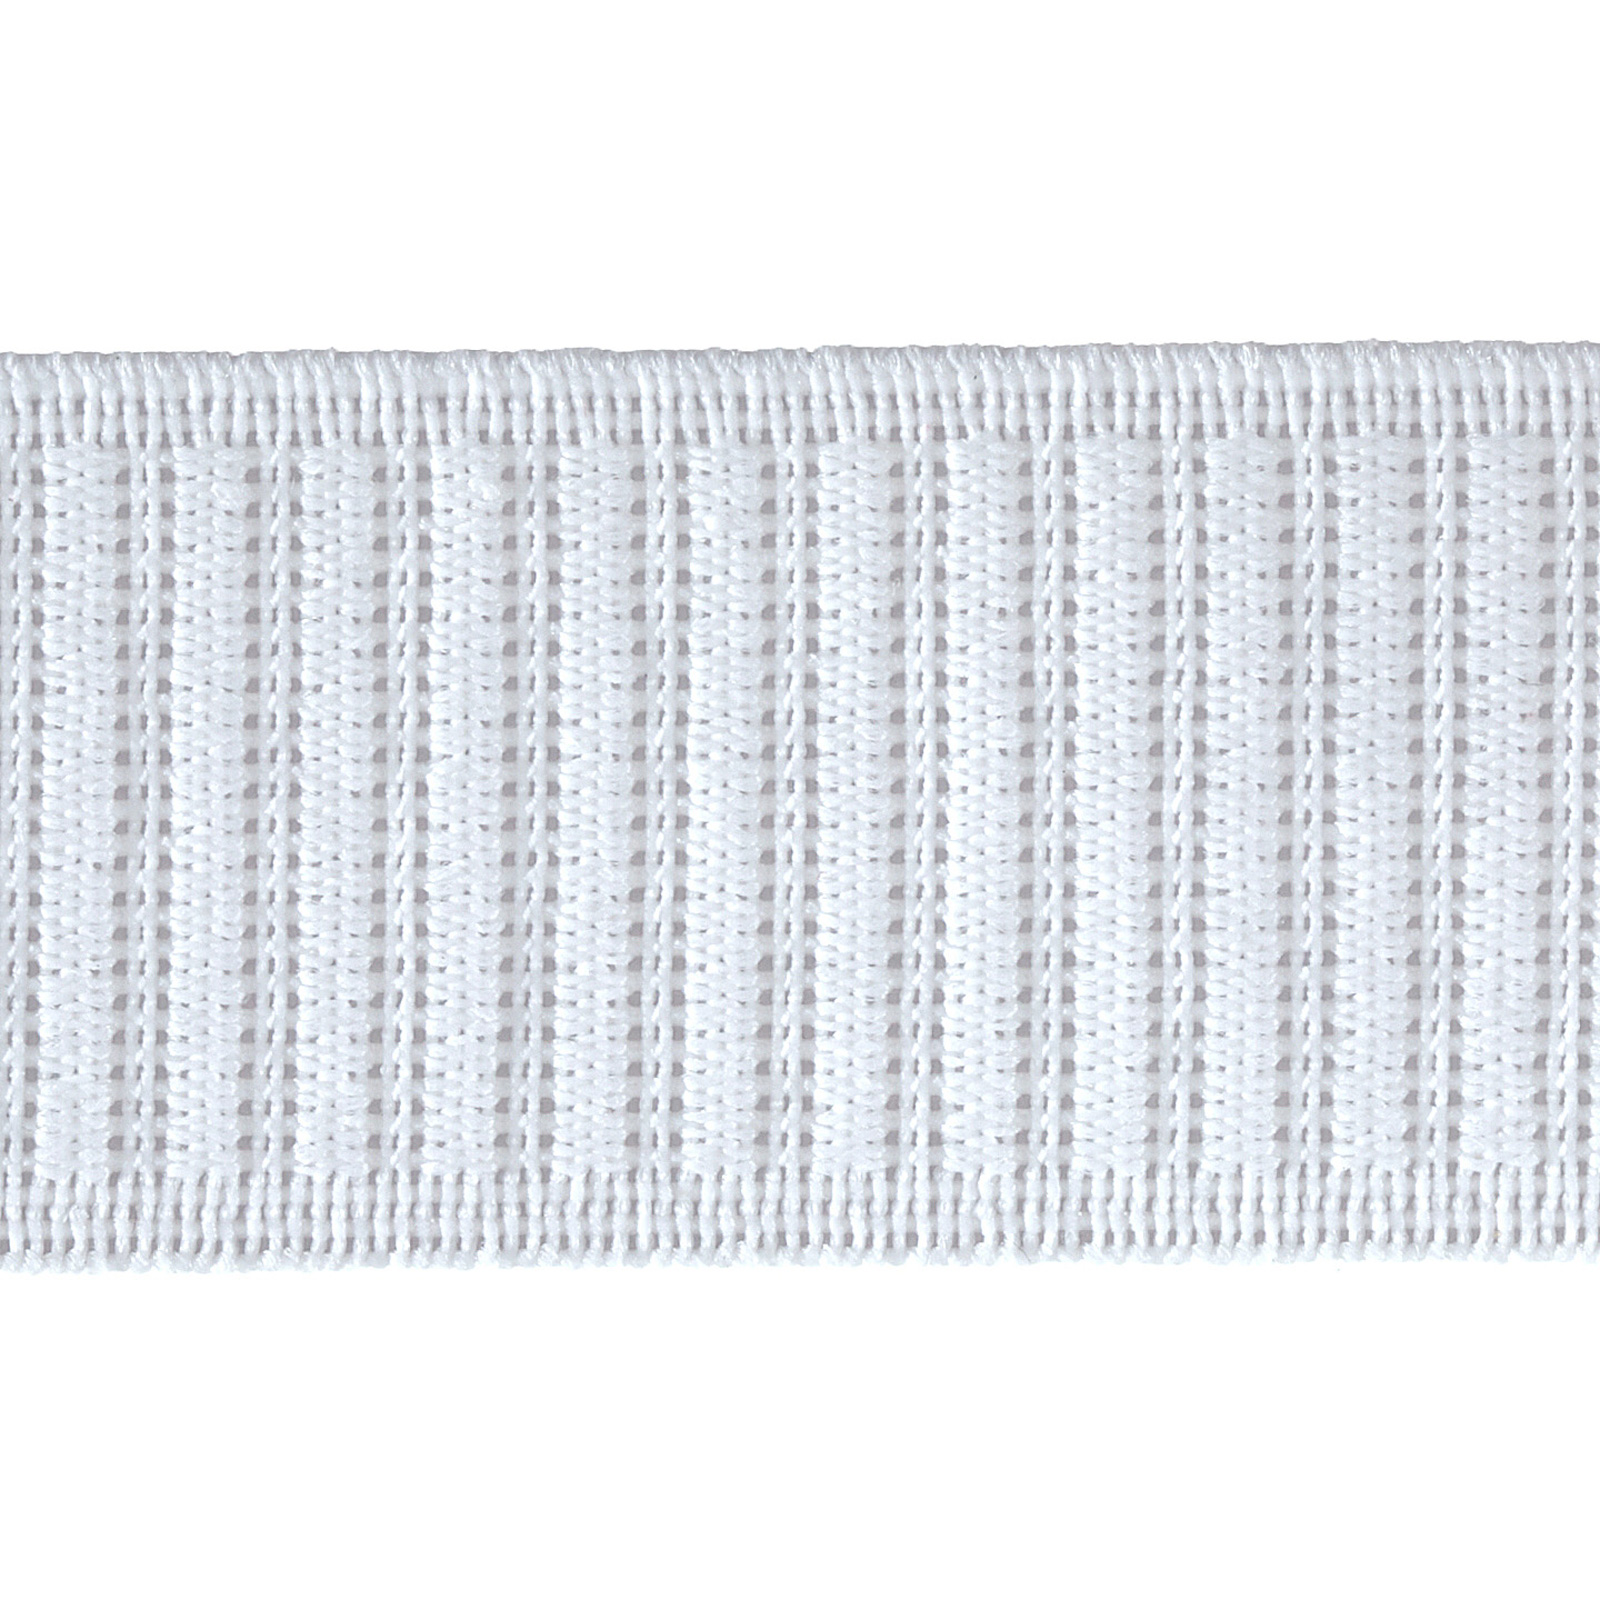 1-1/2'' Non-Roll Ribbed Elastic White - By the